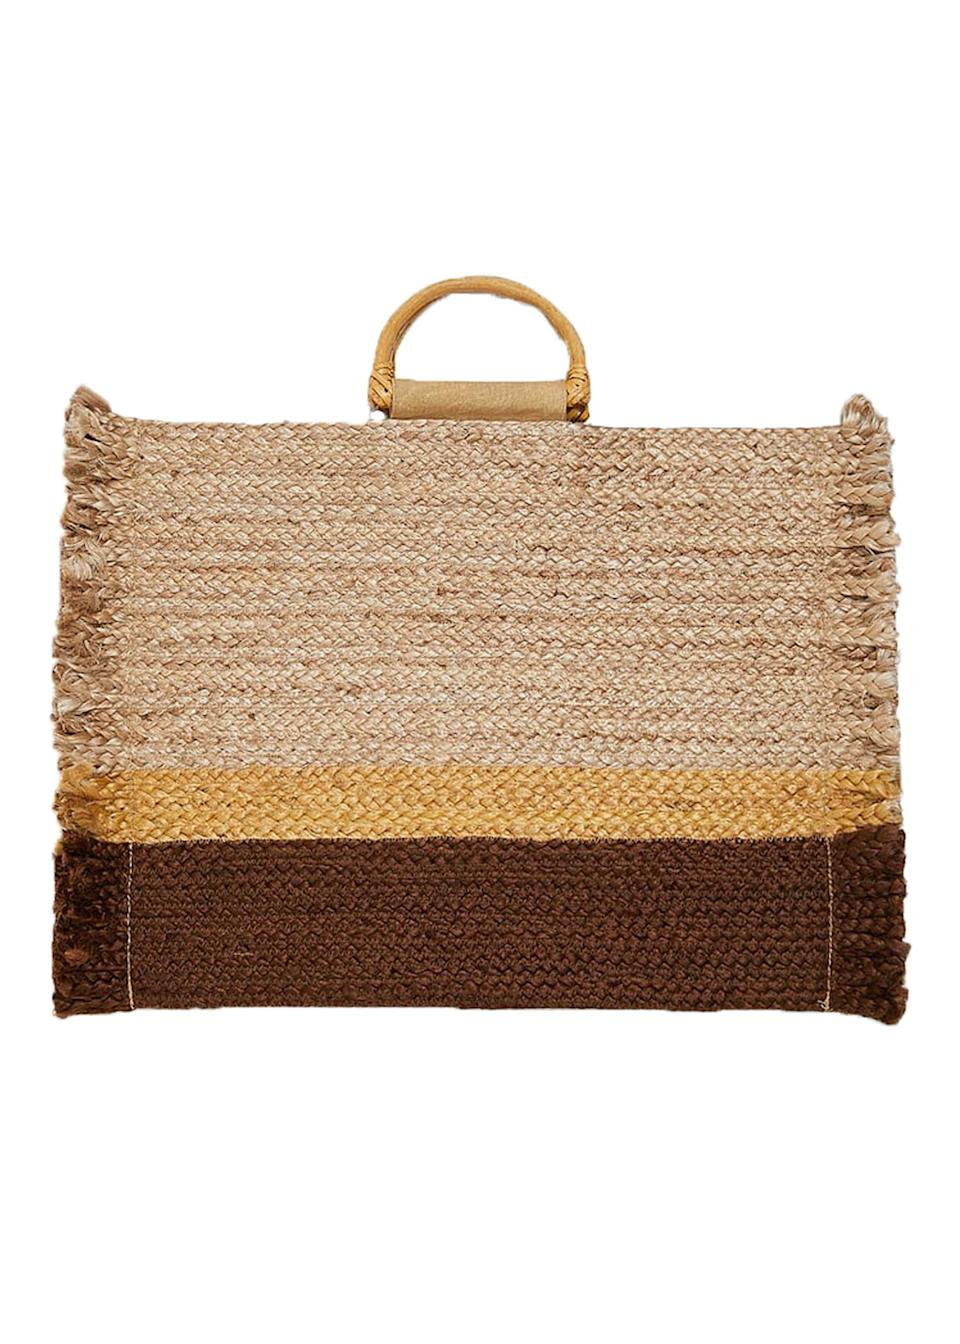 """<p>Roomy enough to carry around your water bottle, sunglasses and a stash of books, this natural tote bag has all feeling all kinds of excited for summer. <a href=""""https://www.zara.com/uk/en/natural-tote-bag-p02571007.html?v1=8127540&v2=1180464"""" rel=""""nofollow noopener"""" target=""""_blank"""" data-ylk=""""slk:Shop now"""" class=""""link rapid-noclick-resp"""">Shop now</a>. </p>"""